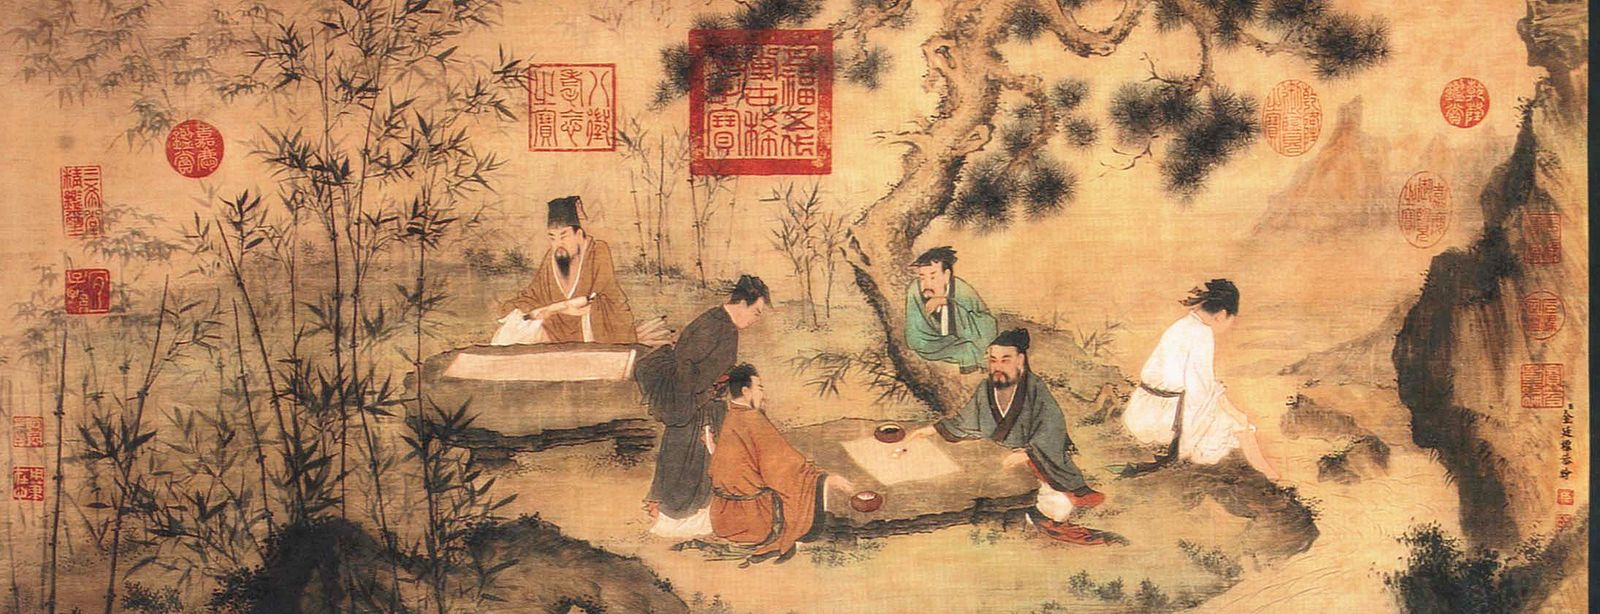 traditional chinese history essay Simplified chinese (sc) characters have fewer strokes than traditional chinese (tc), that is why it's called simplified and is the only difference when the sc writing system was first developed.